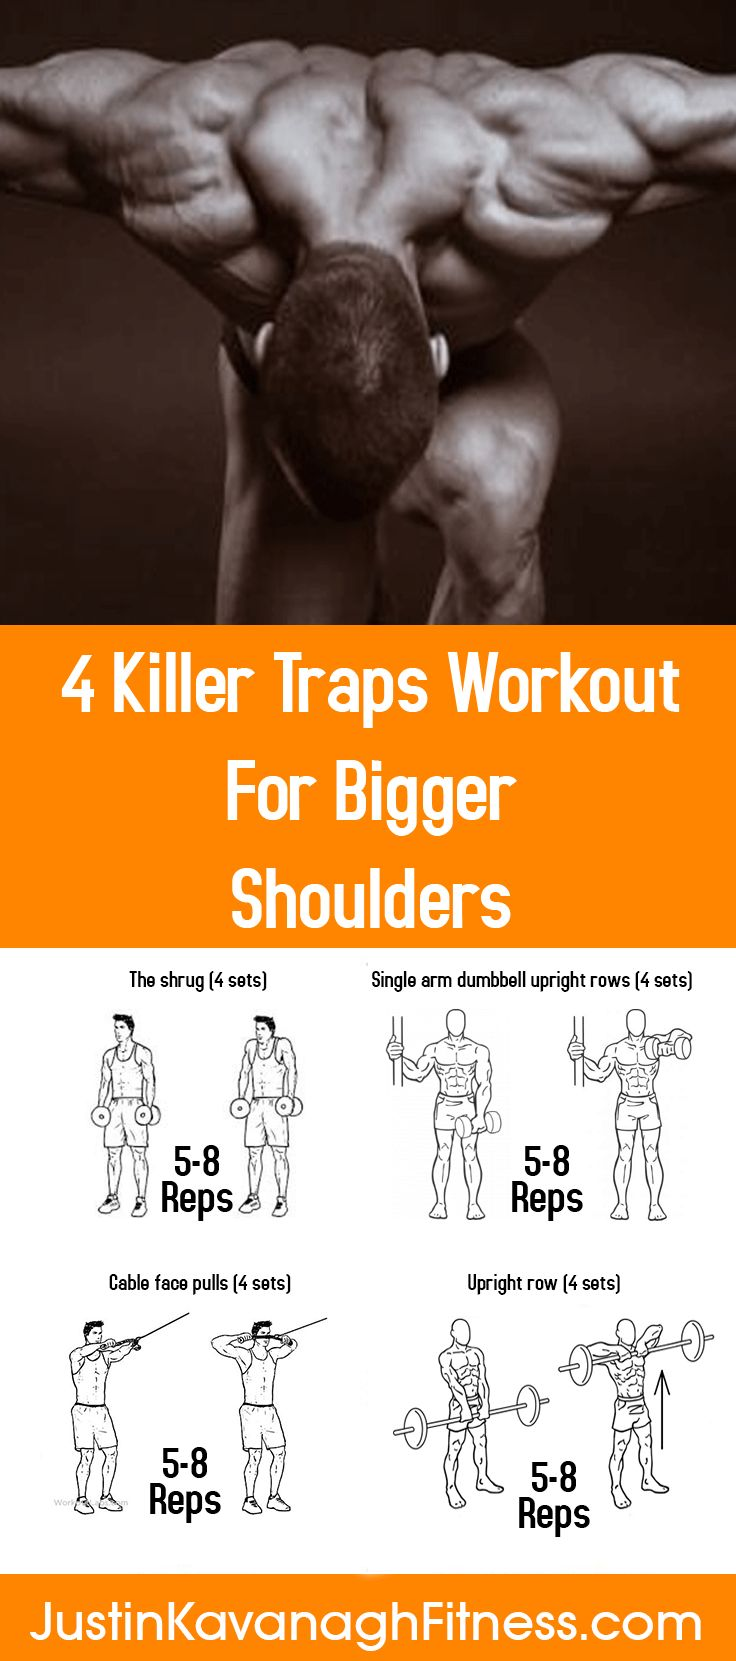 4 Killer Traps Workout